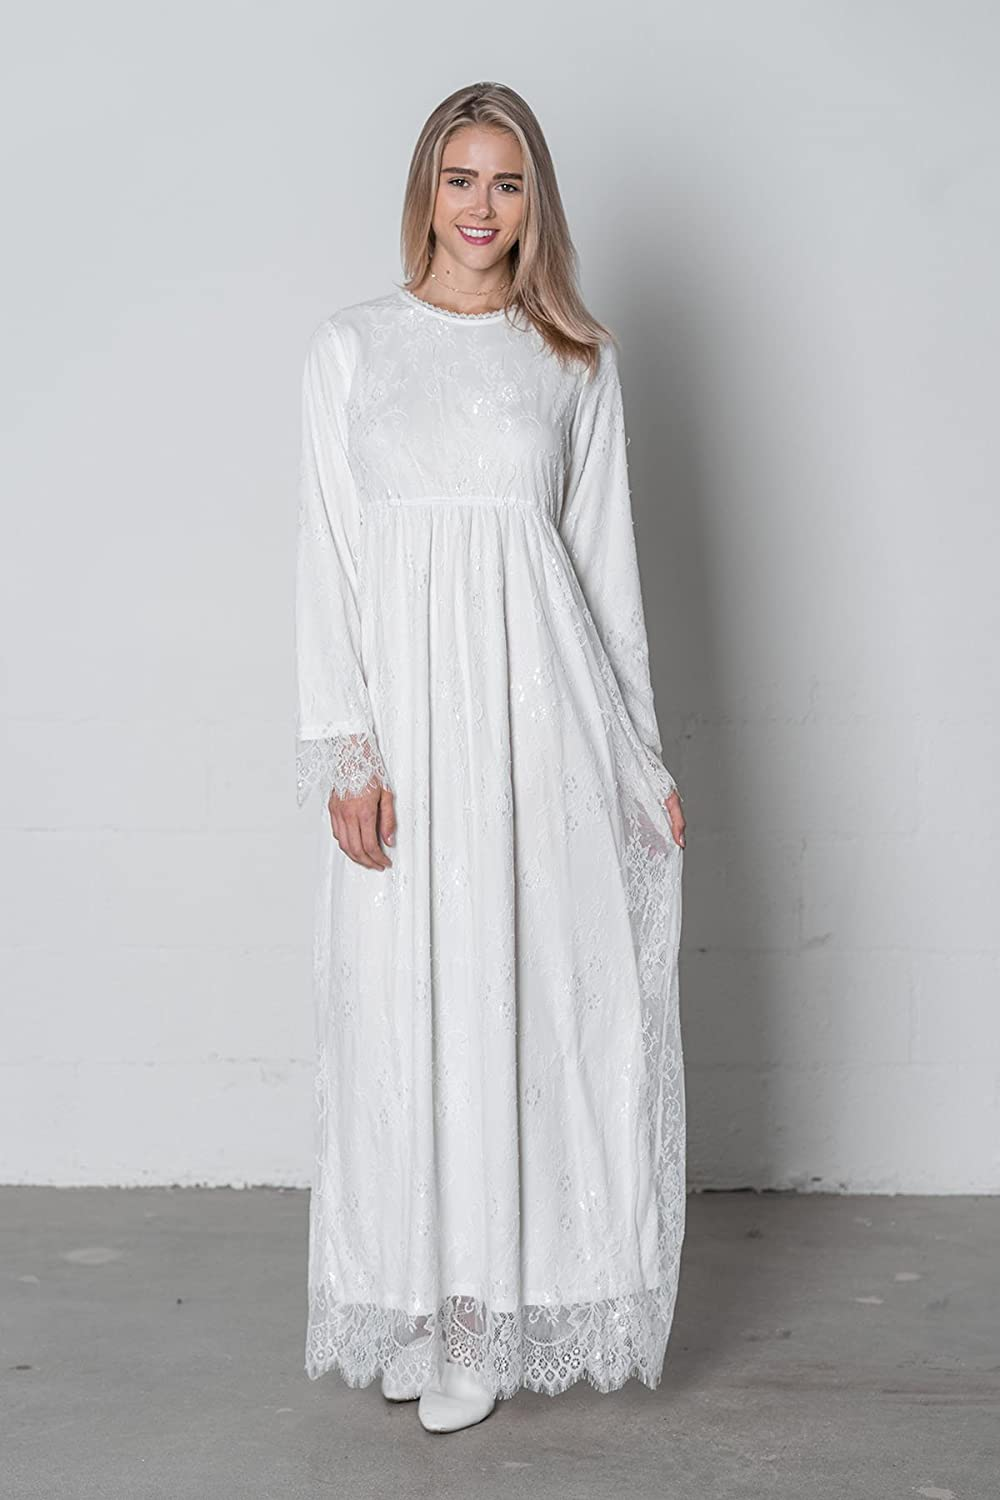 70s Outfits – 70s Style Ideas for Women ModWhite White Jasmine Dress $74.00 AT vintagedancer.com